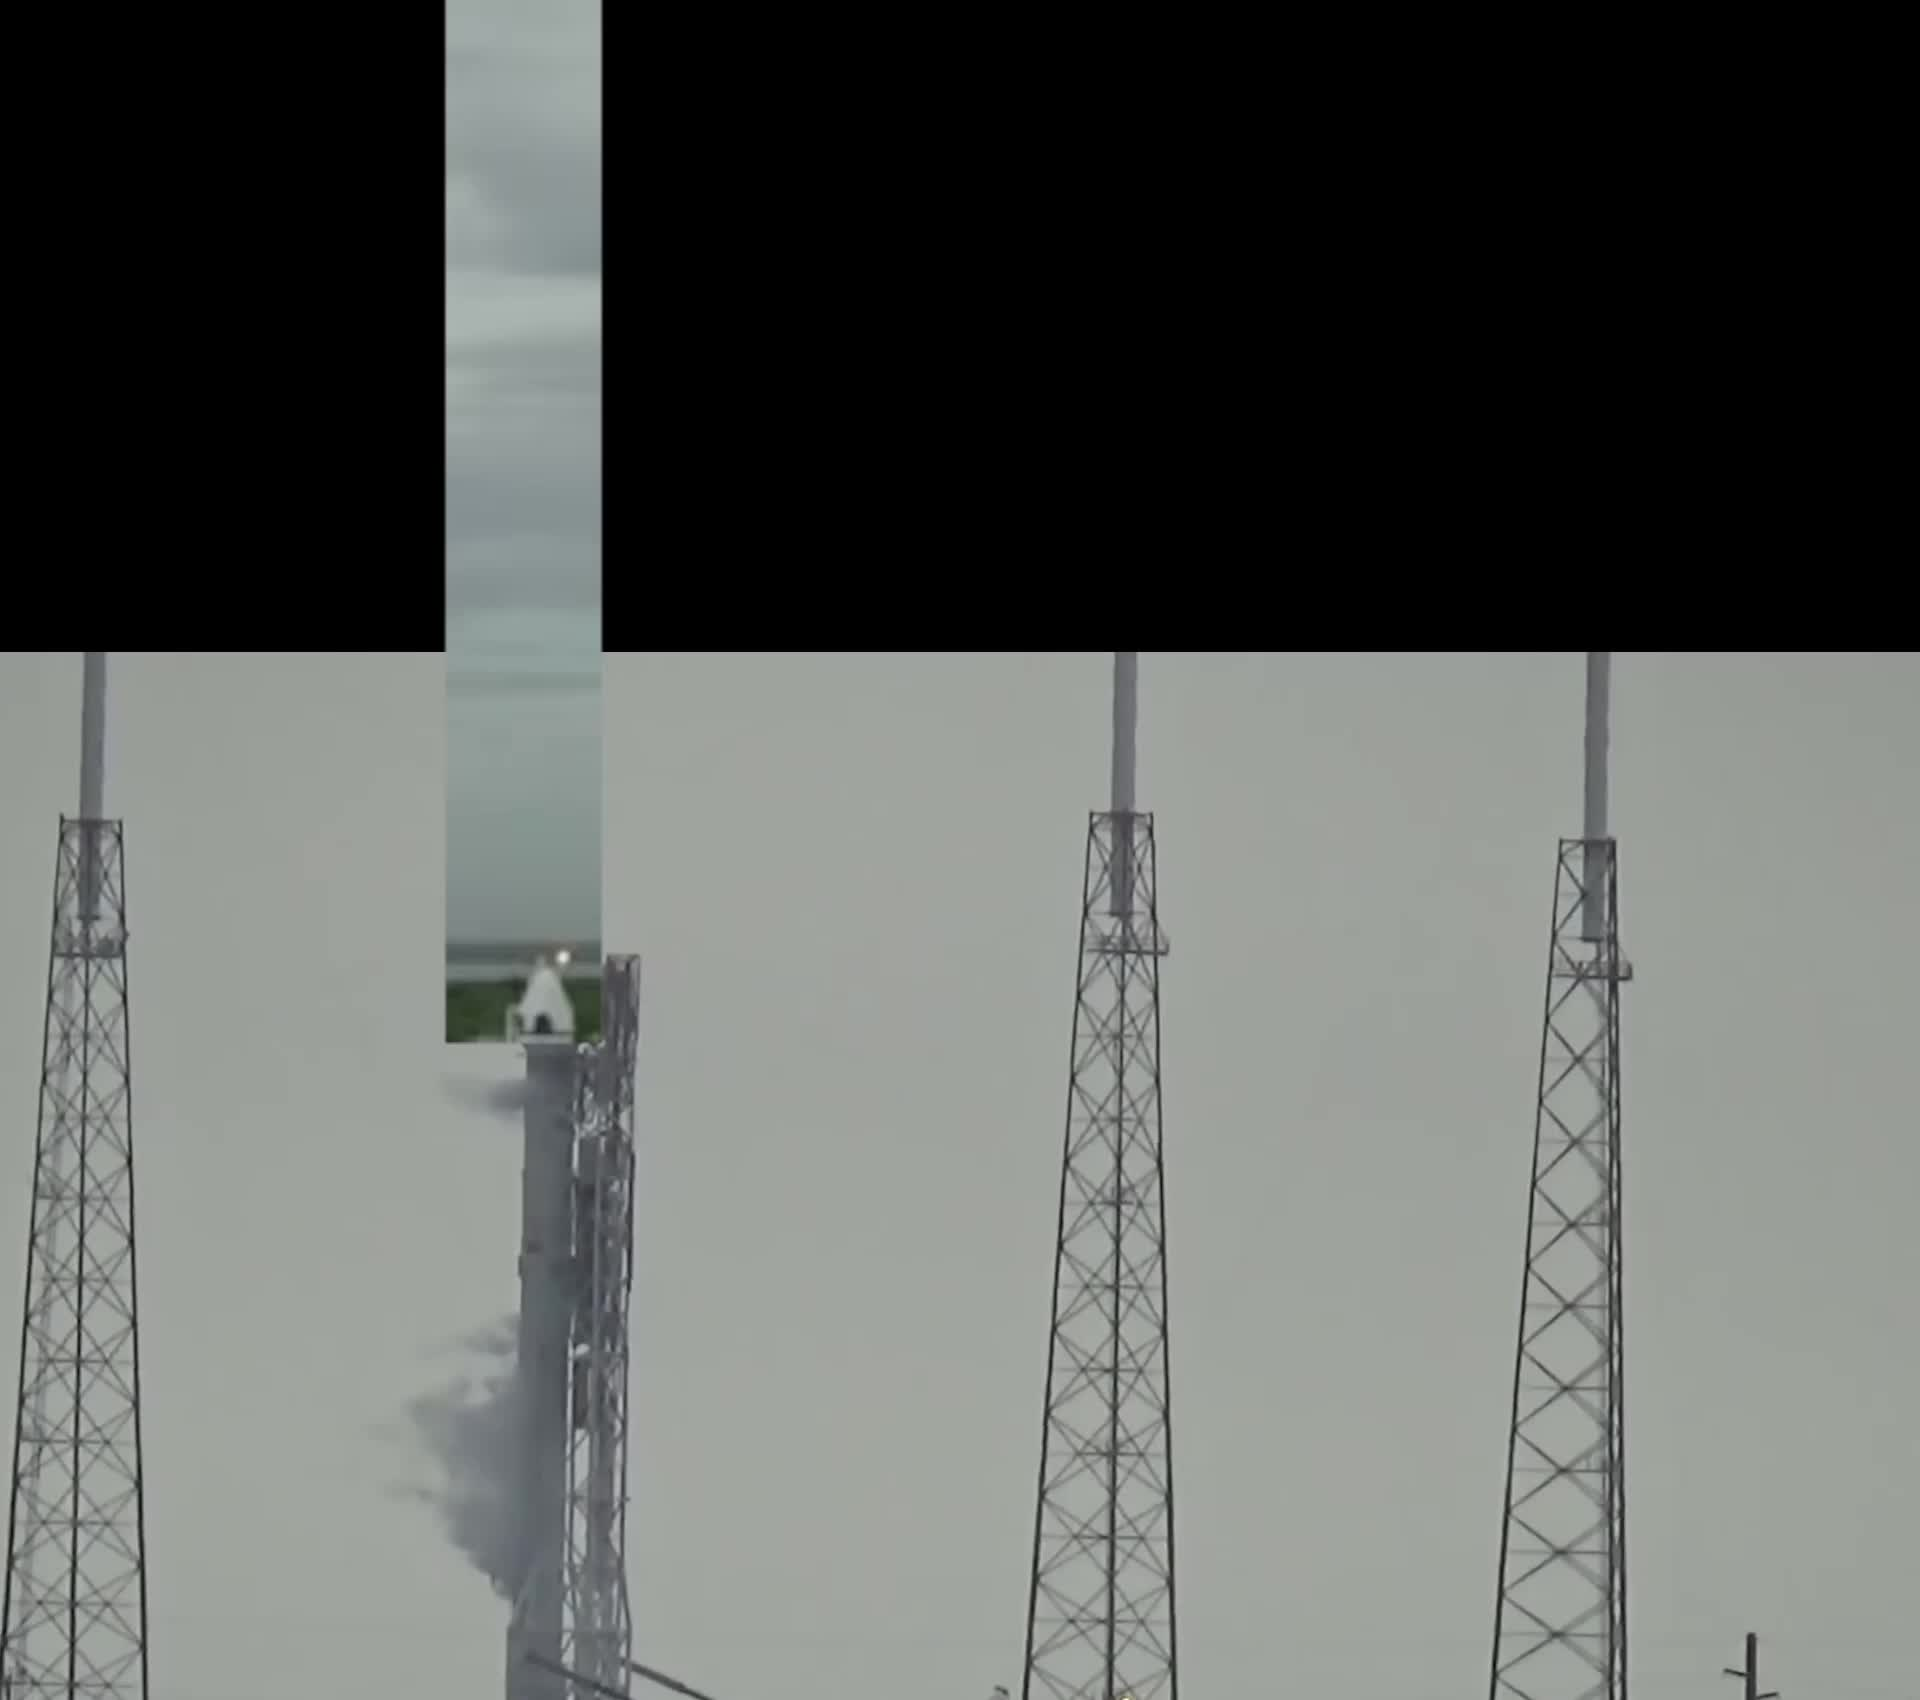 Crew Dragon test abort speed compared to Falcon 9 fireball